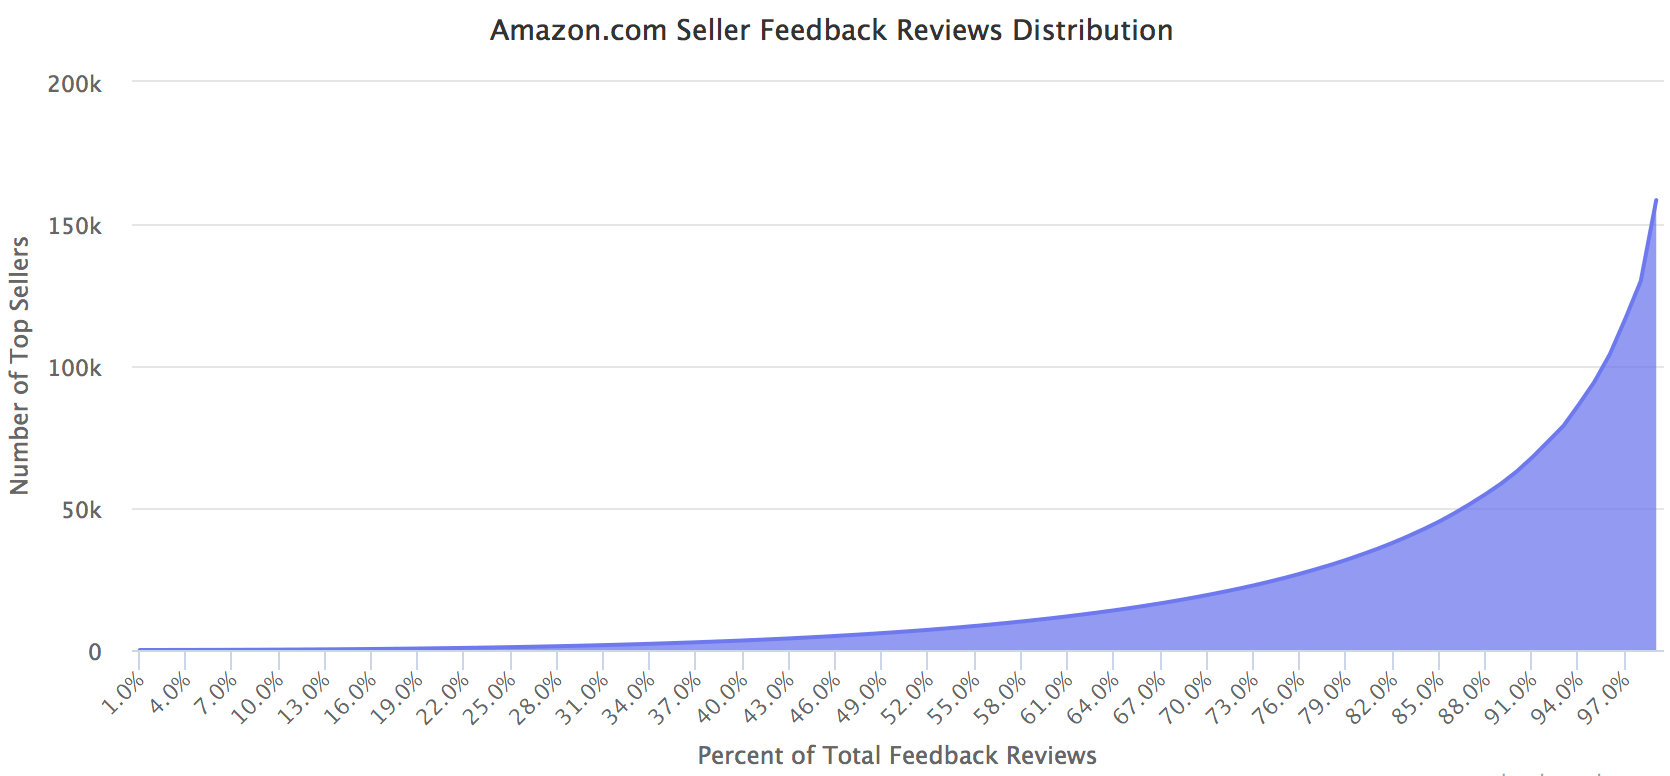 Amazon.com Seller Feedback Reviews Distribution